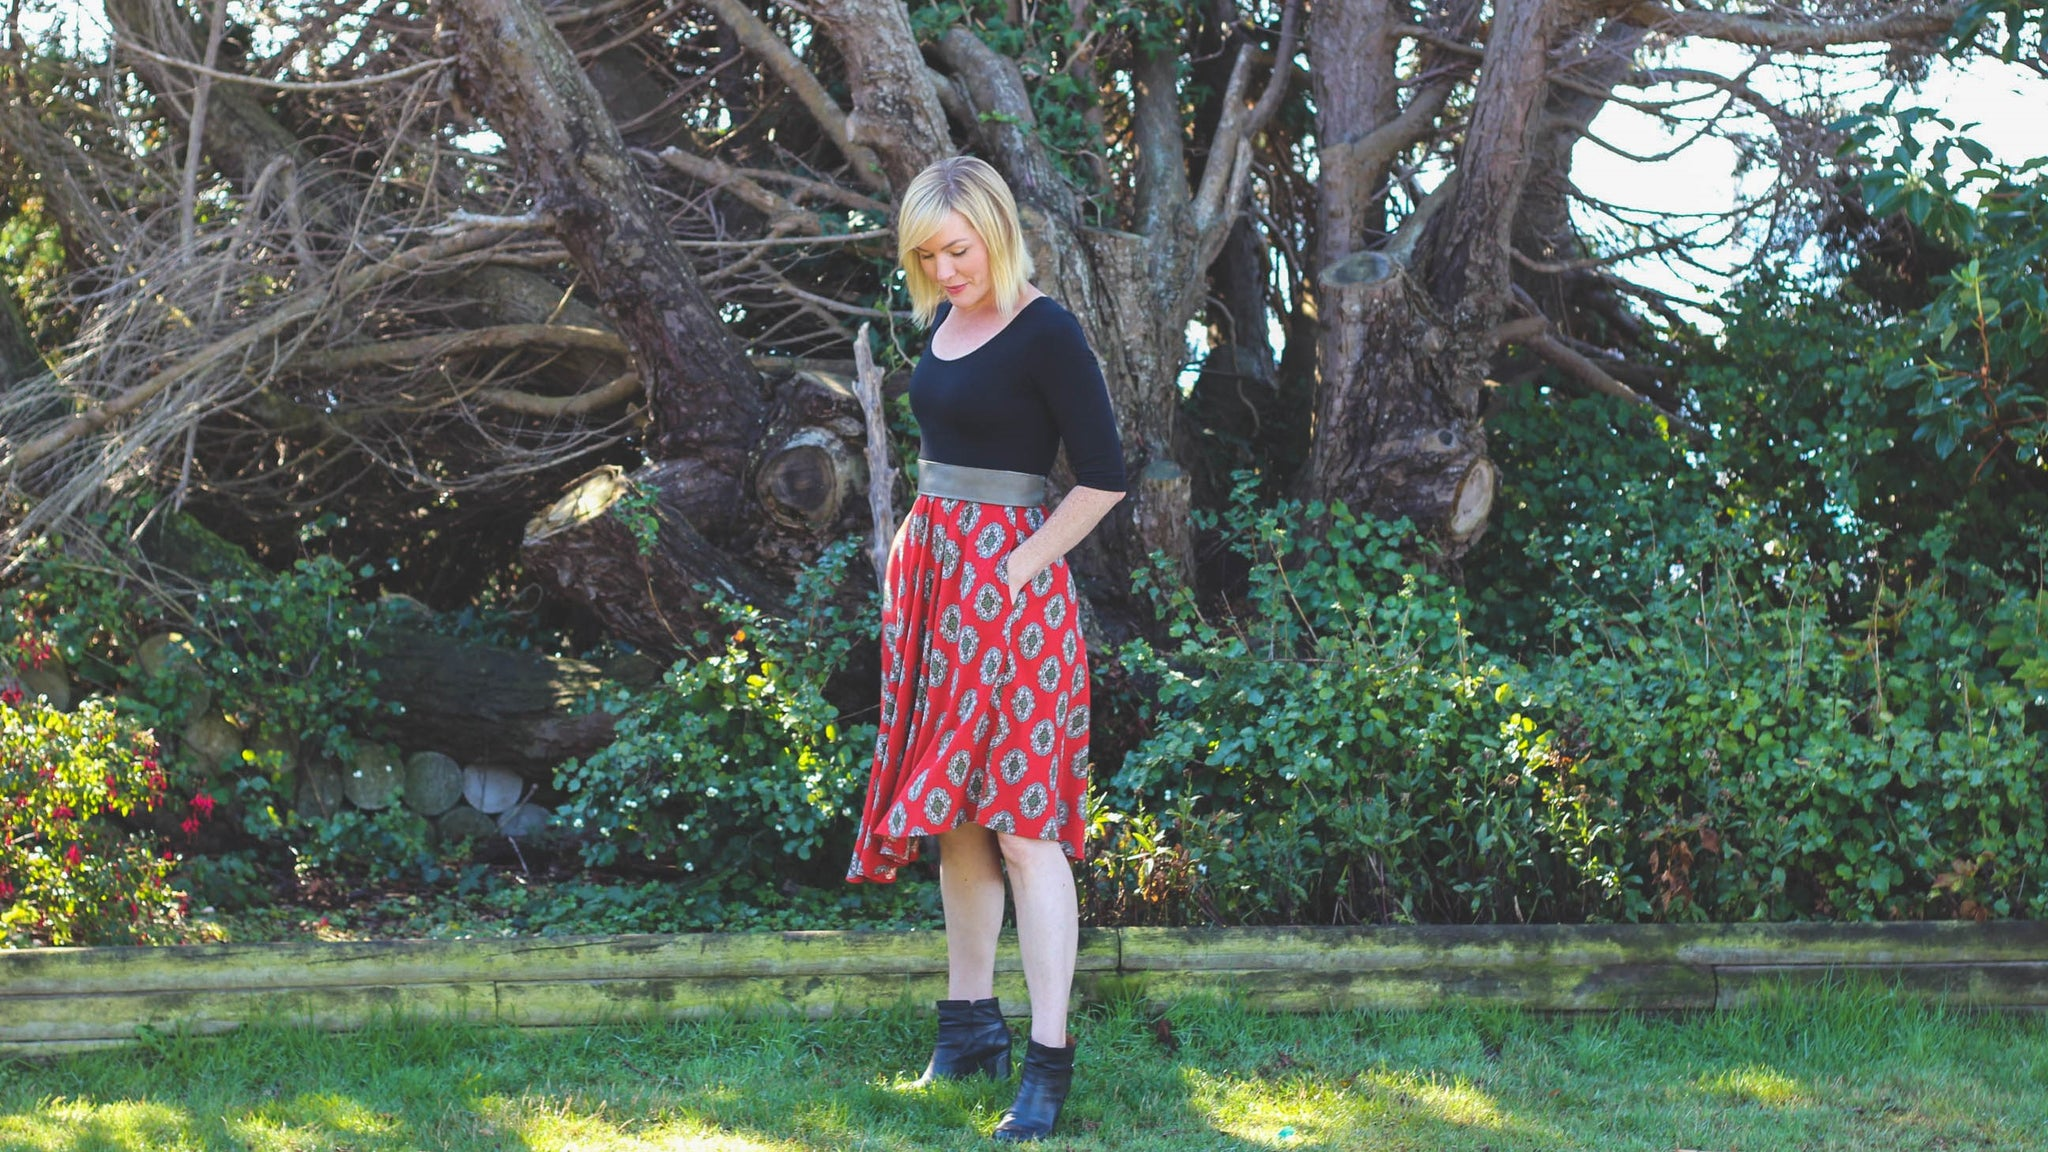 Ola Dubois, Dresses with Pockets, Victoria BC Clothing, Sustainable Fashion Canada